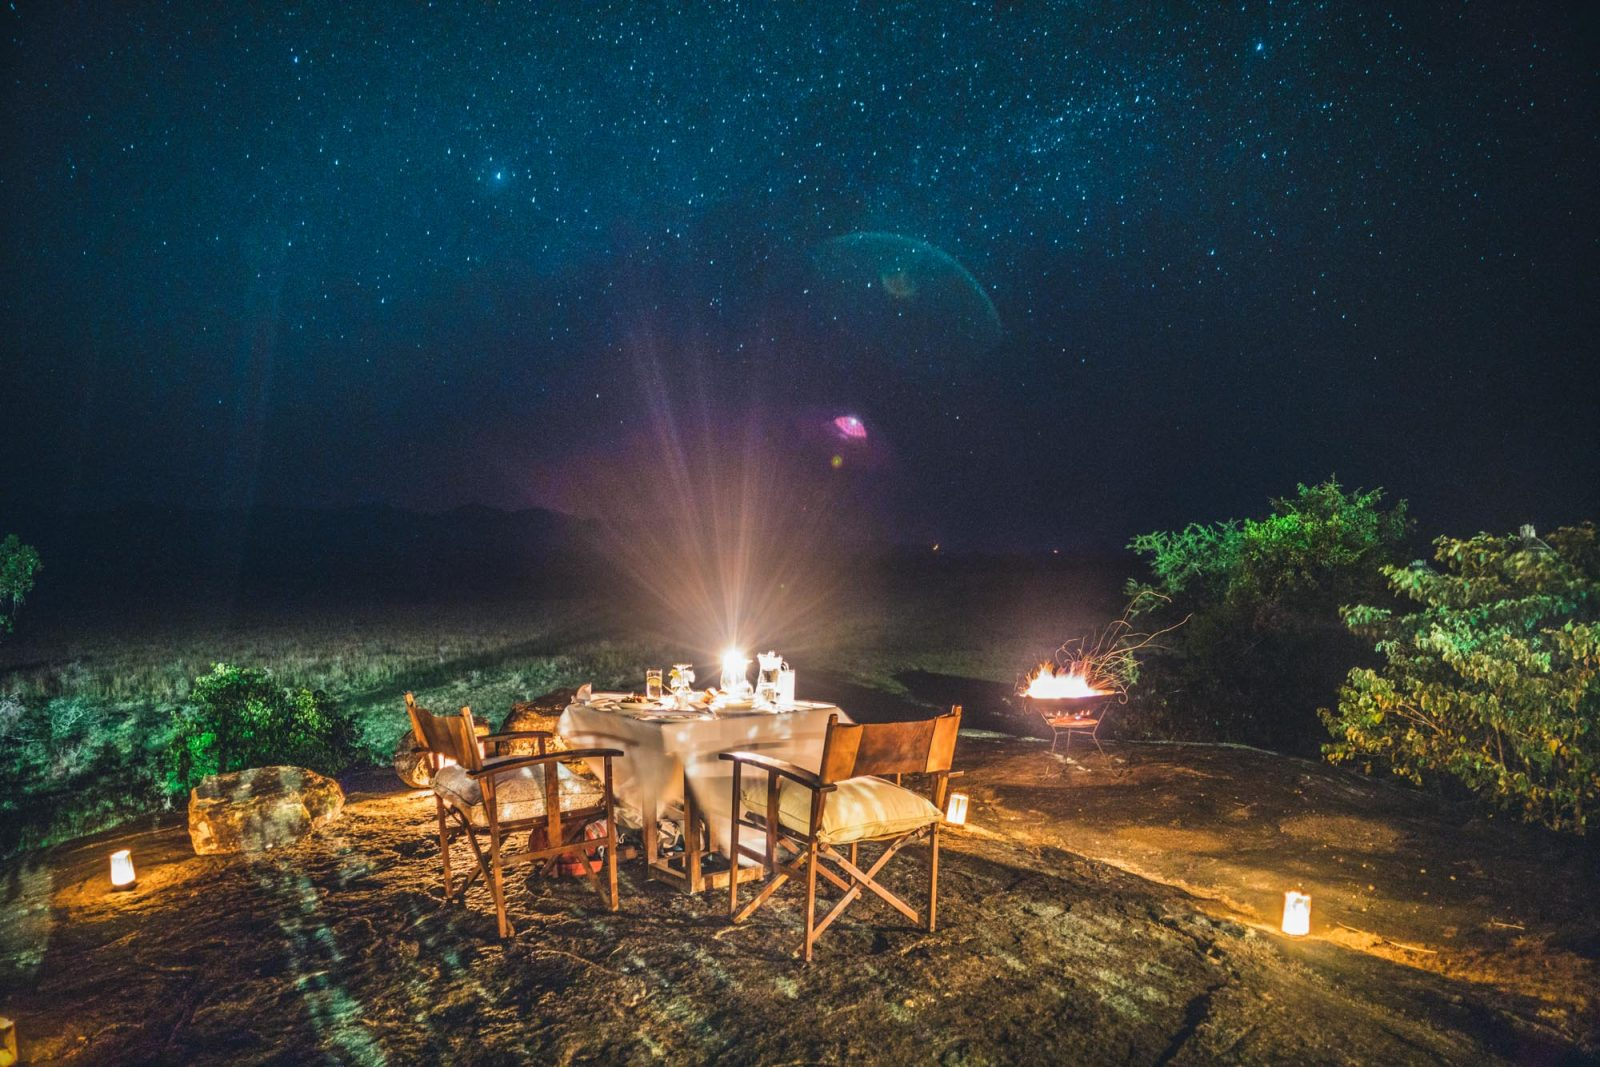 Dinner under the stars at the Apoka Lodge in Kidepo National Park in Northern Uganda